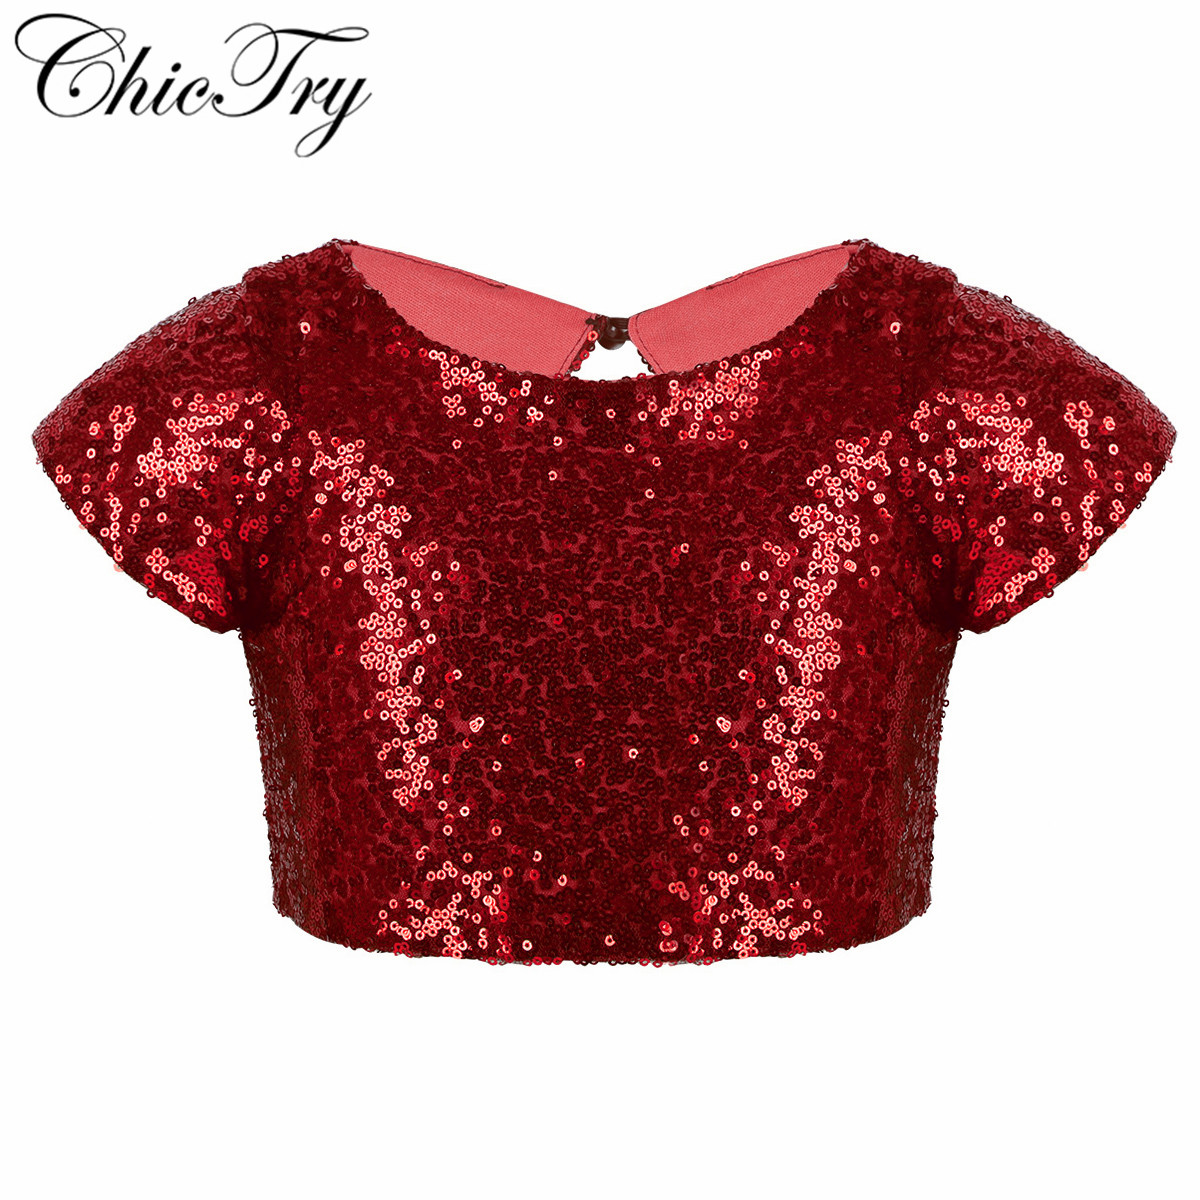 Girls Ballet Dance Tank Tops Cap Sleeves Sparkly Sequins Keyhole Back Crop Top For Dance Stage Performance Party Daily Wear